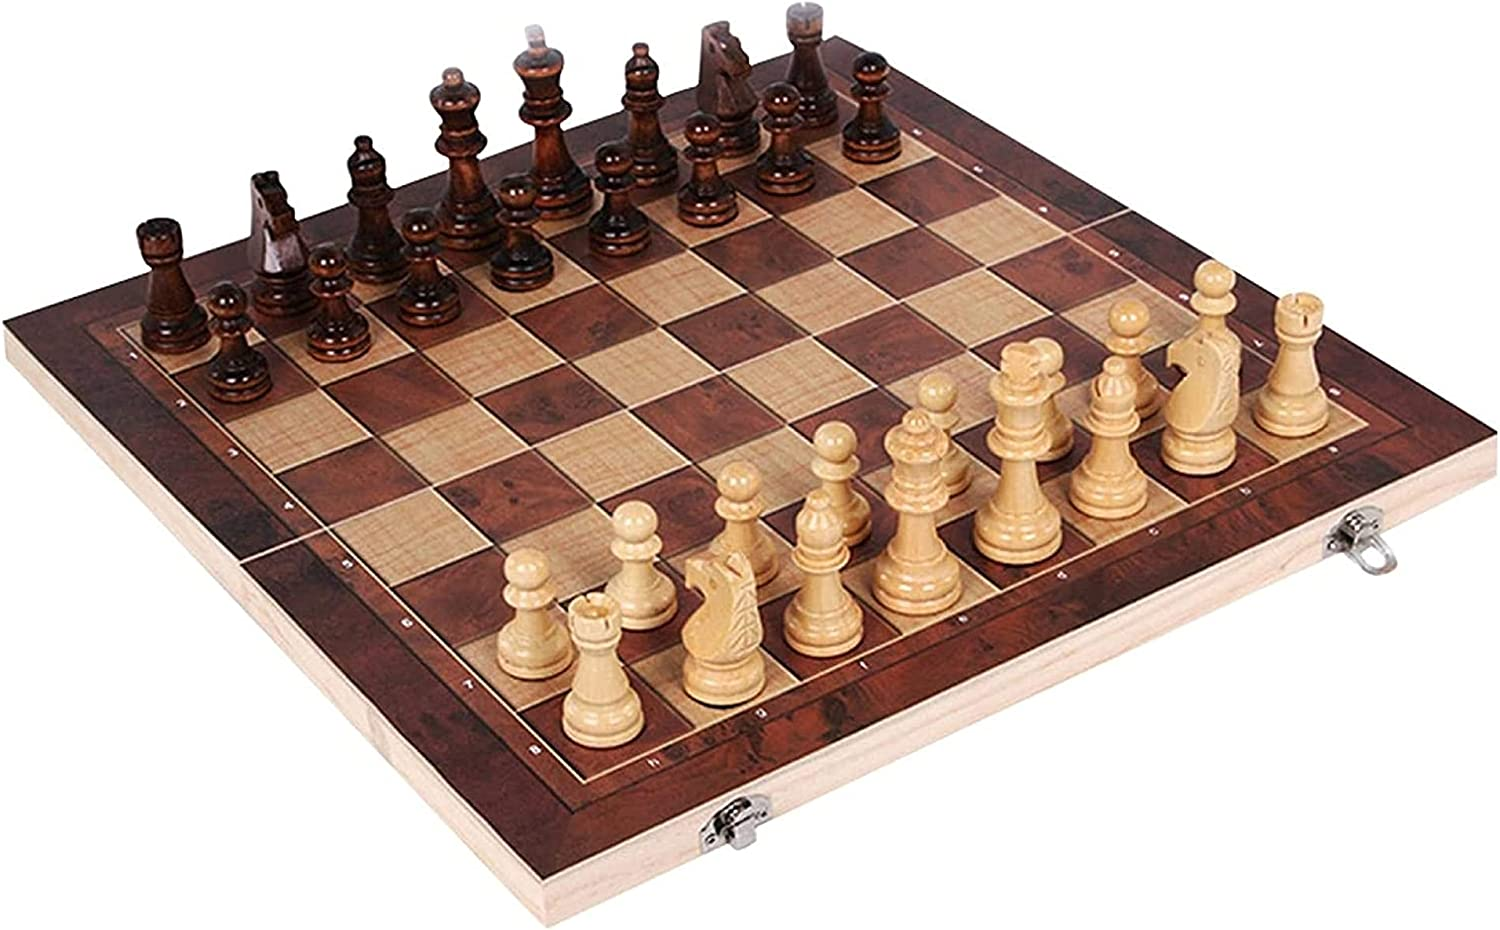 MTCWD Chess Board Set Game Superior Portab Magnetic Max 71% OFF